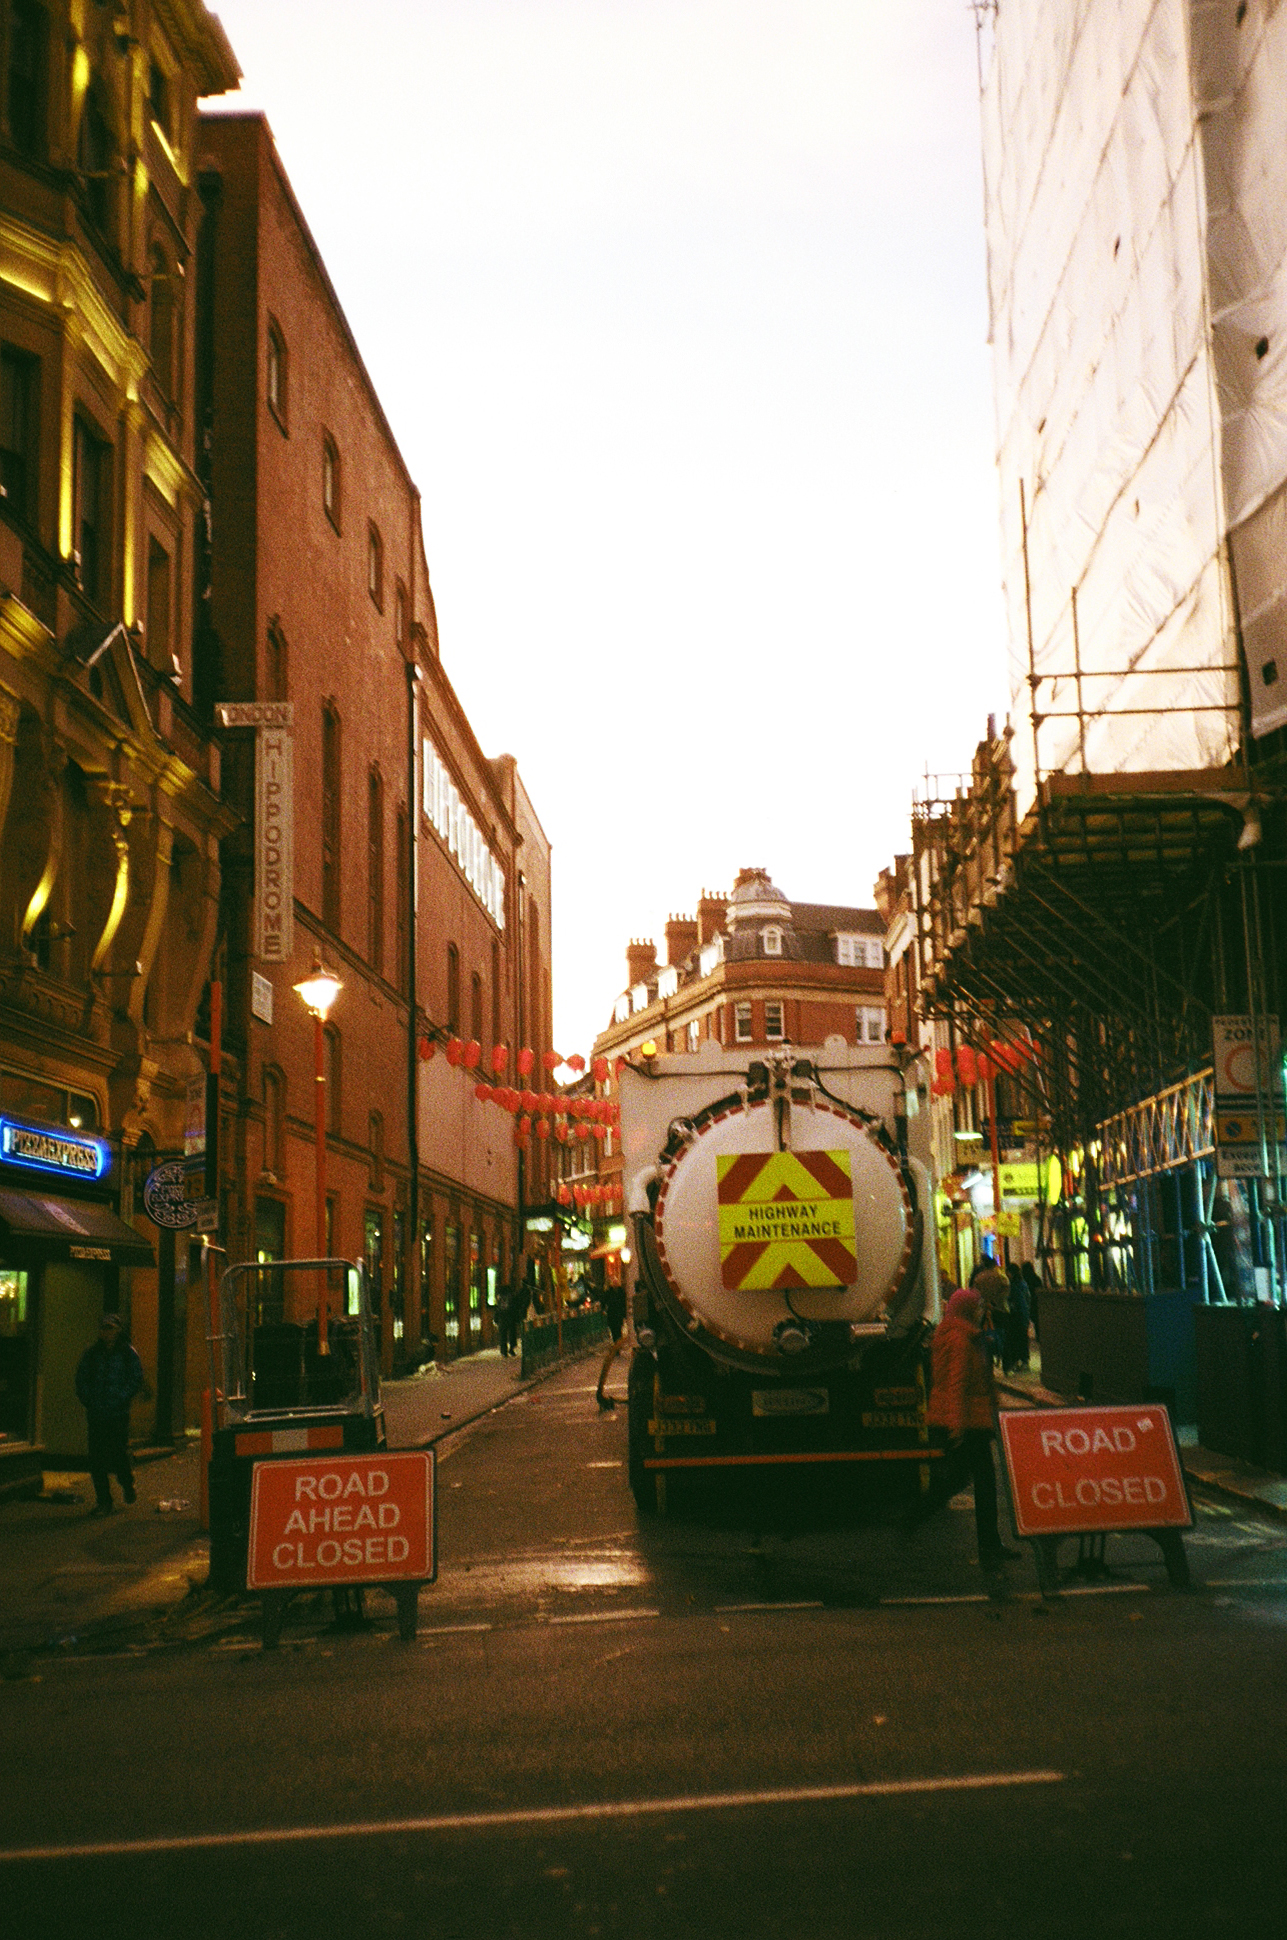 London China Town at sunset 35mm film diary by Ailera Stone